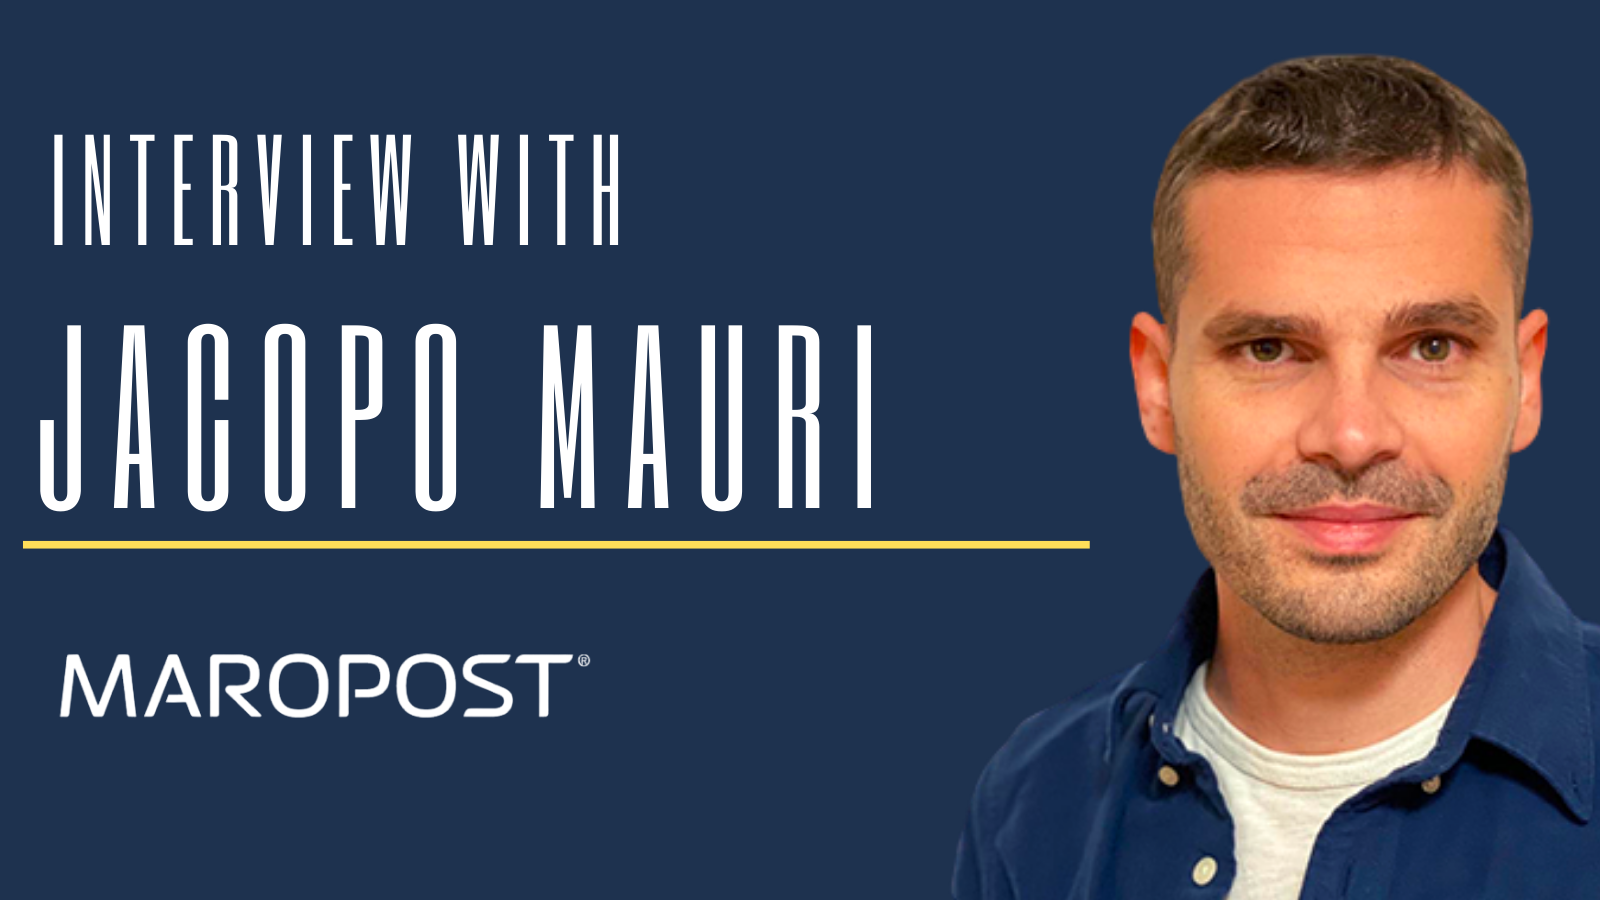 interviewing-jacopo-mauri,-the-one-man-band-of-maropost-|-one-of-the-fastest-growing-tech-companies-in-north-america